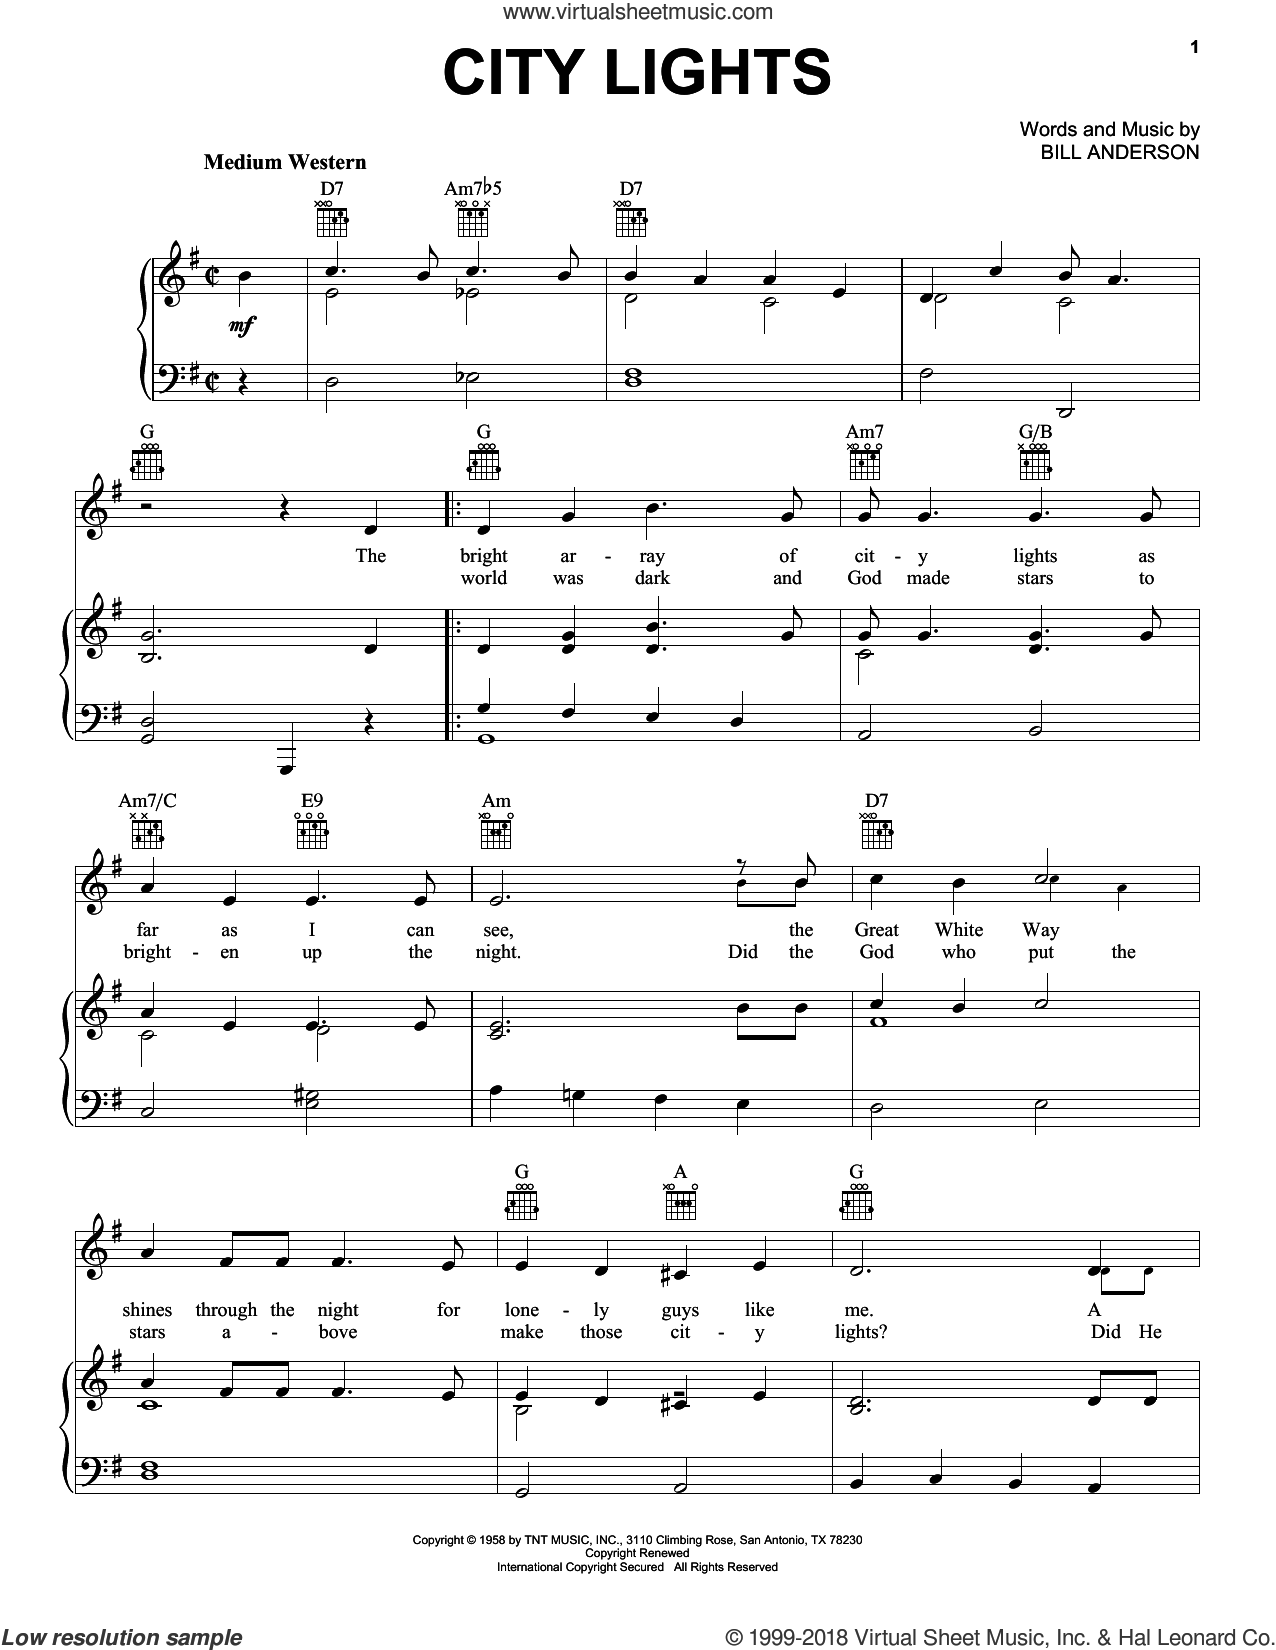 City Lights sheet music for voice, piano or guitar by Bill Anderson, Debbie Reynolds, Ivory Joe Hunter and Ray Price. Score Image Preview.